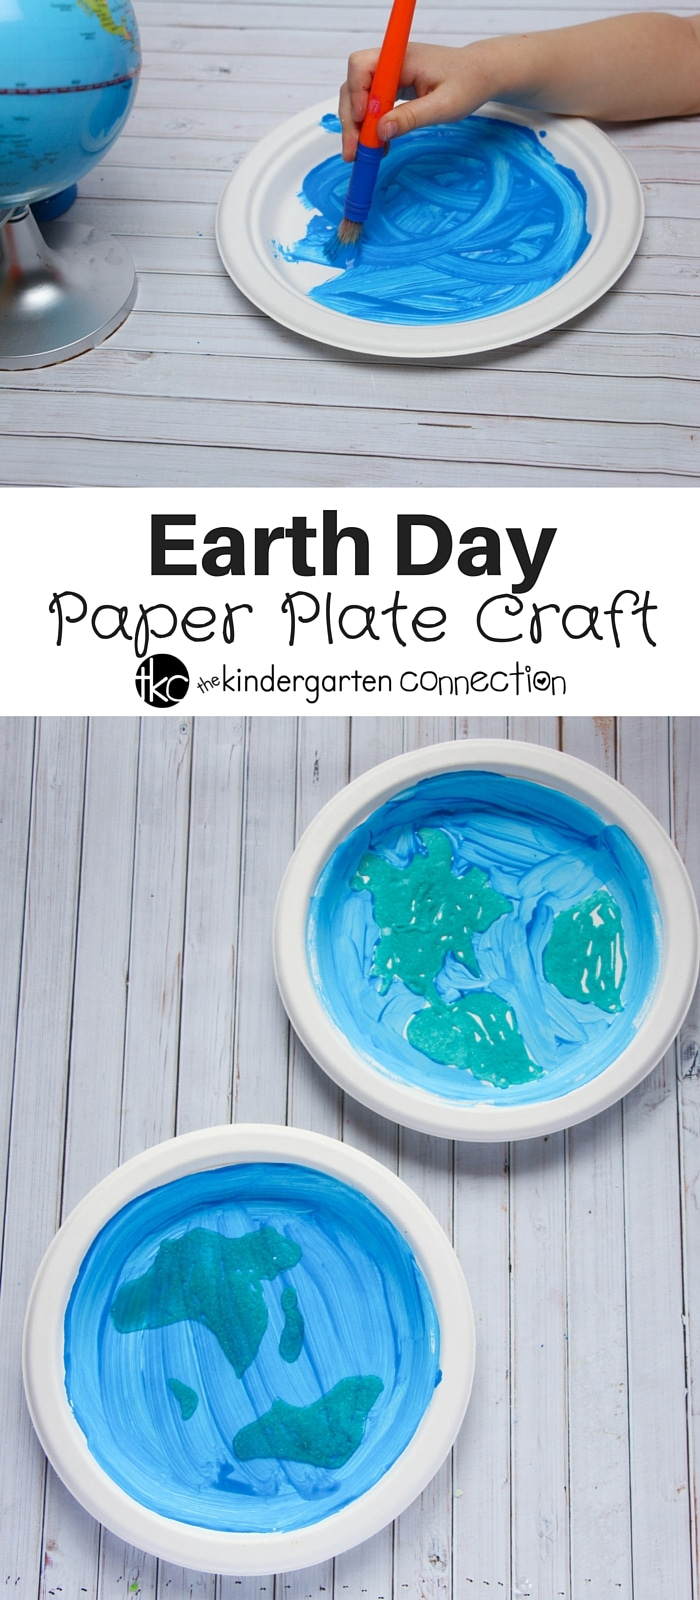 This paper plate craft is a fun hands on way to celebrate Earth Day!  sc 1 st  The Kindergarten Connection & Earth Day Paper Plate Craft - The Kindergarten Connection